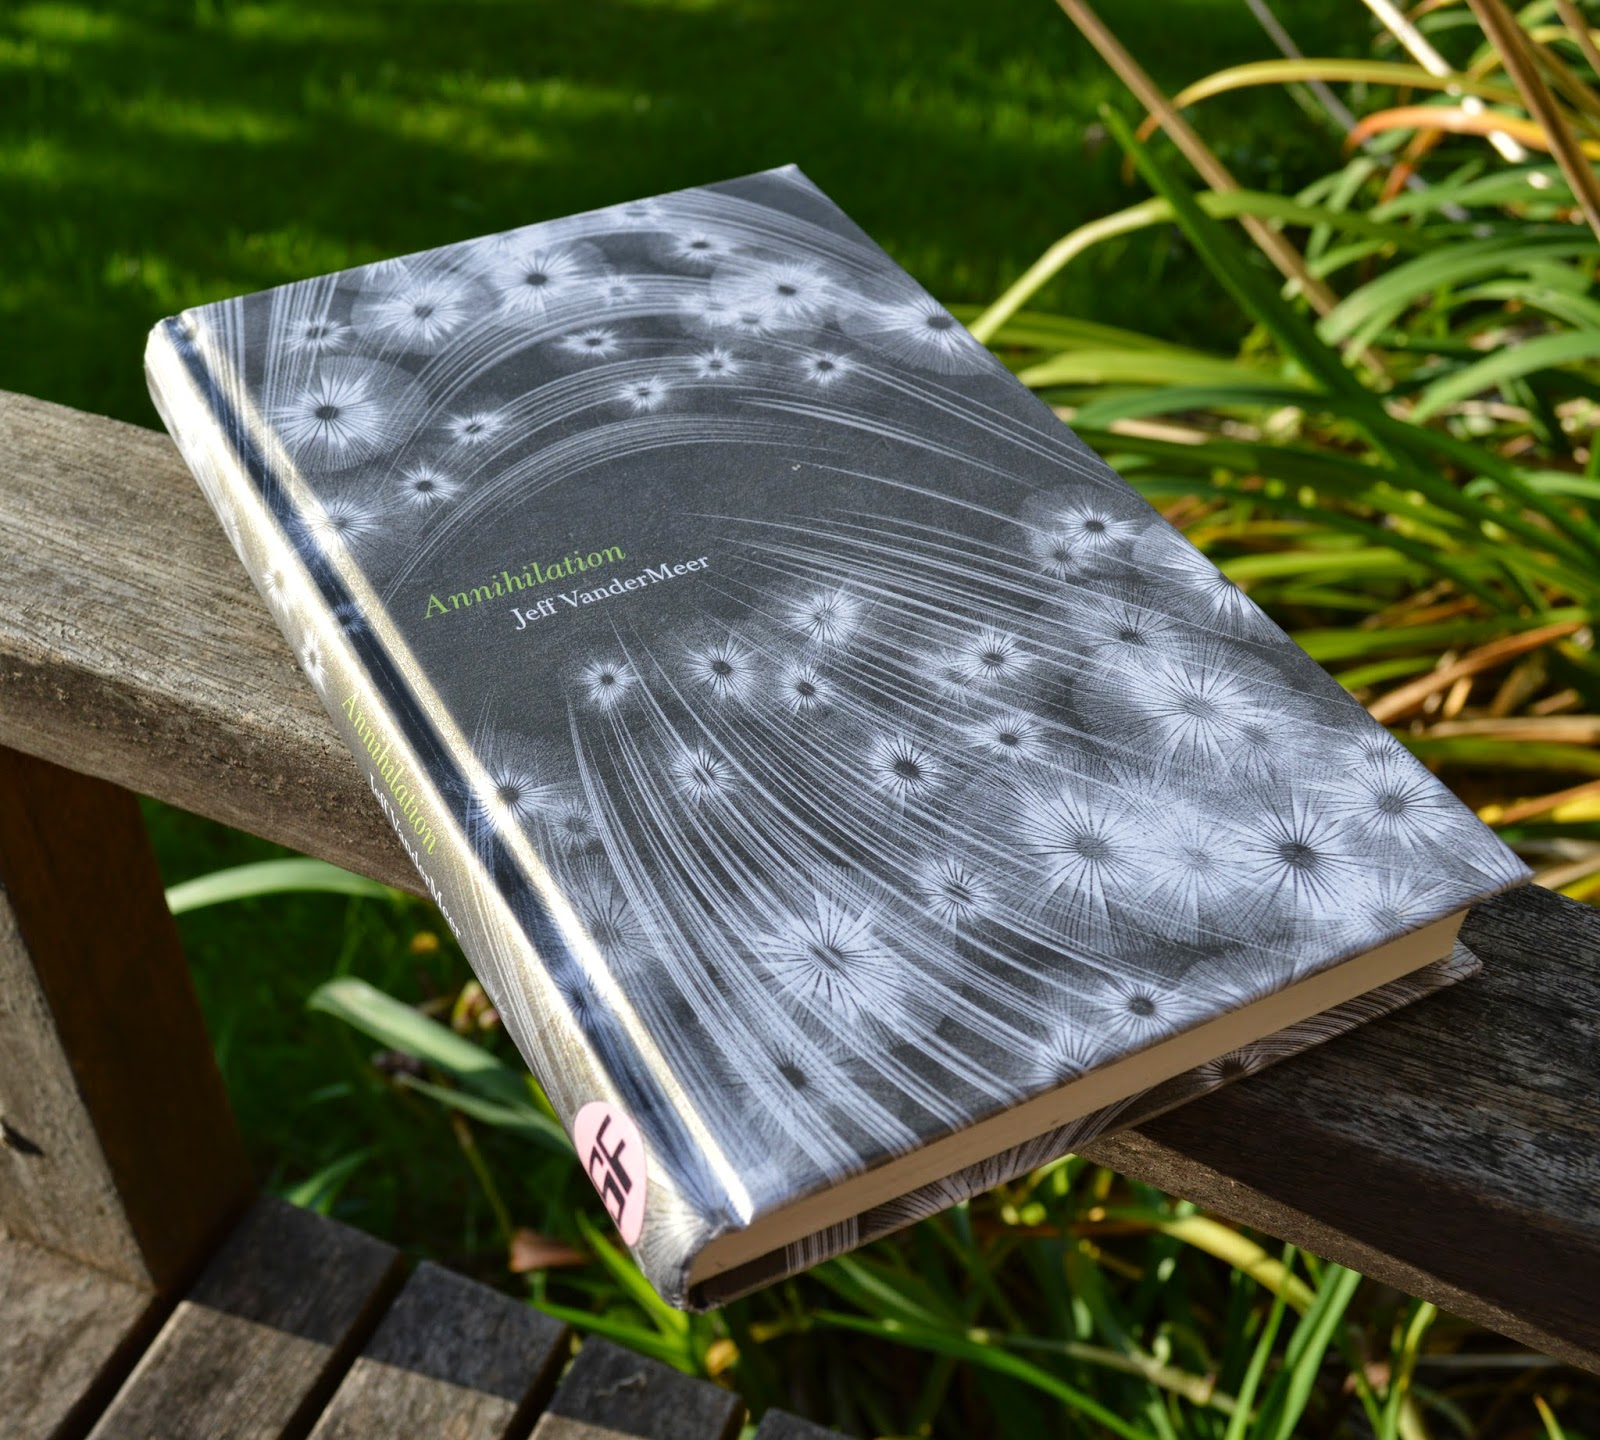 Annihilation, Jeff VanderMeer, Science Fiction, novella, Southern Reach, trilogy, book one, review, hardback, book cover, UK edition